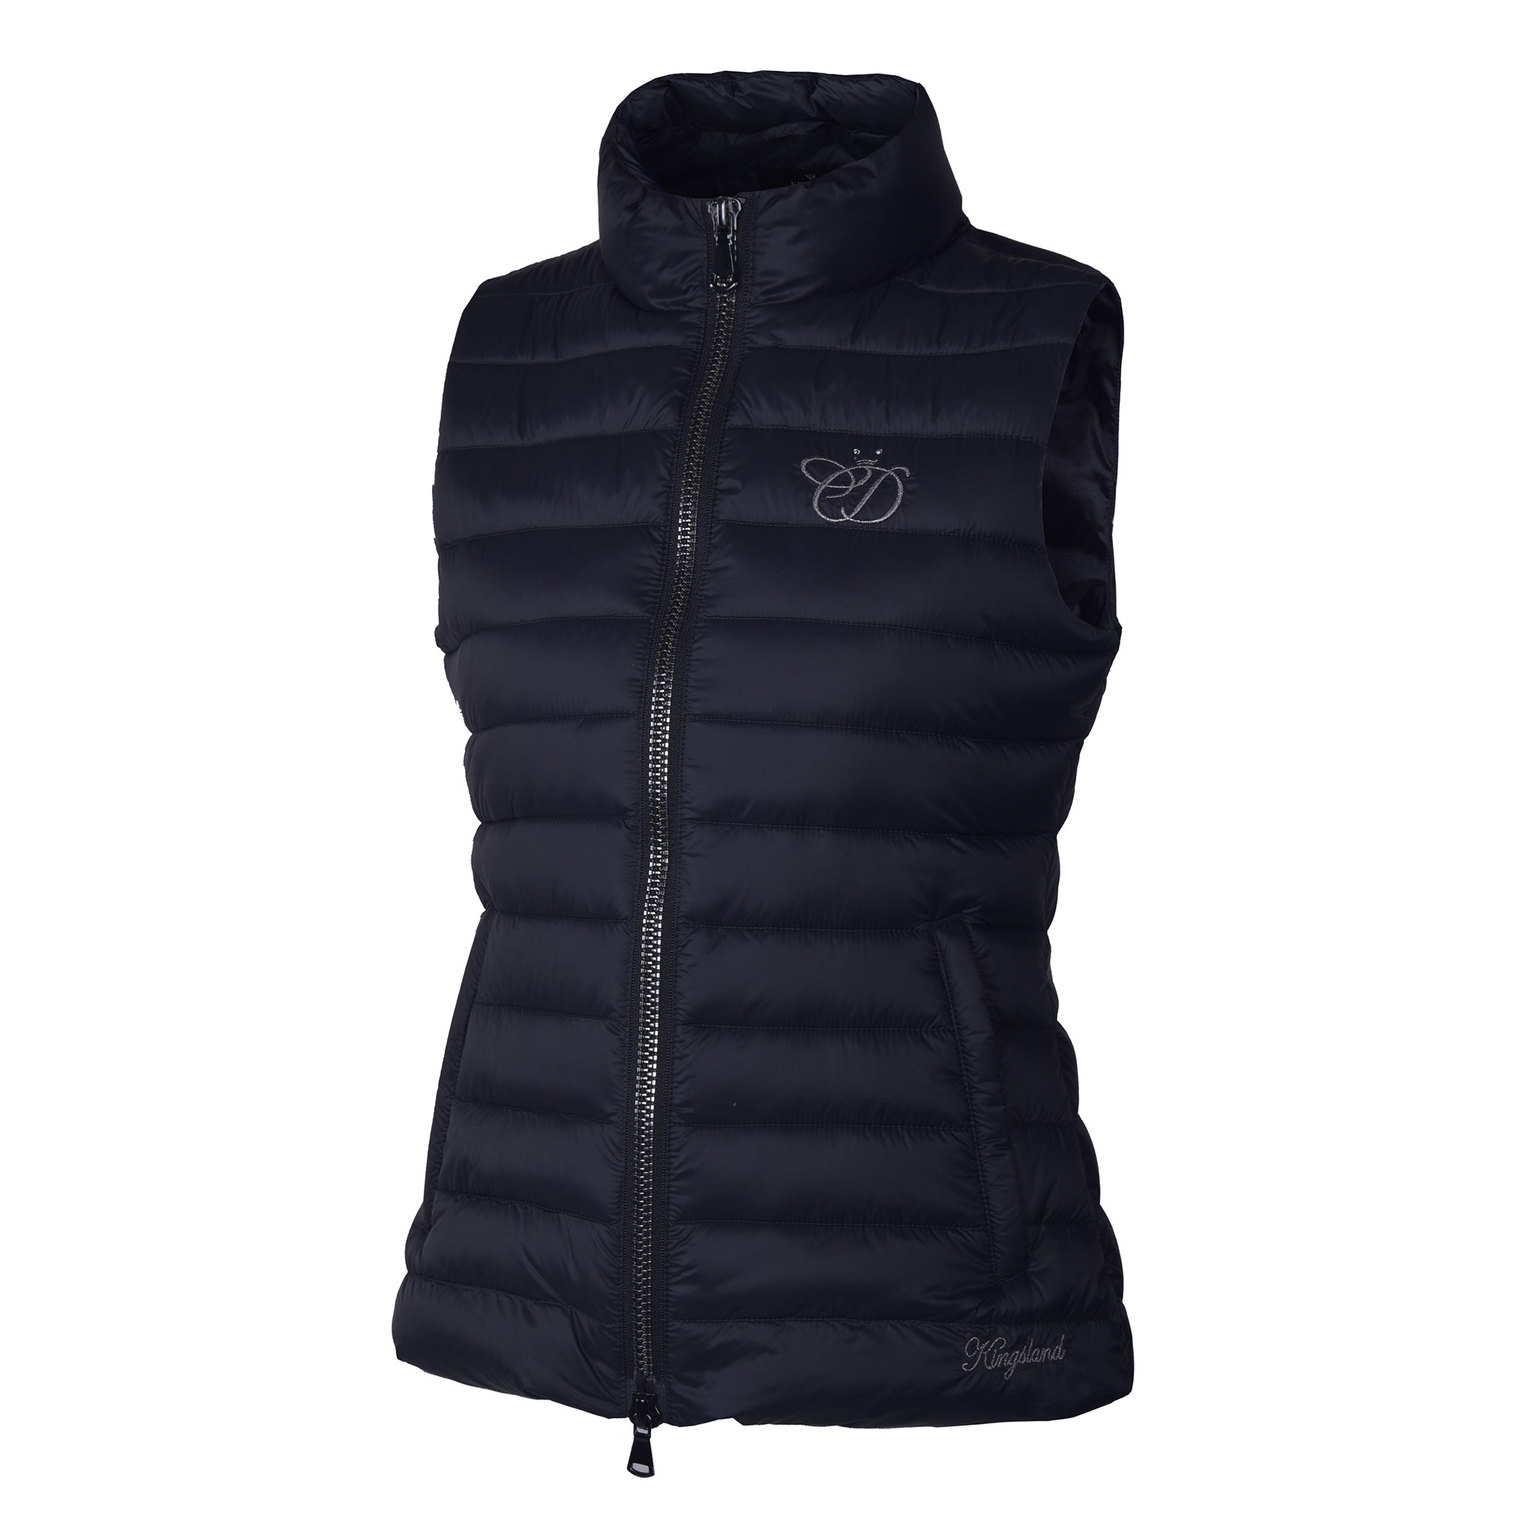 Kingsland vest Corinth Navy